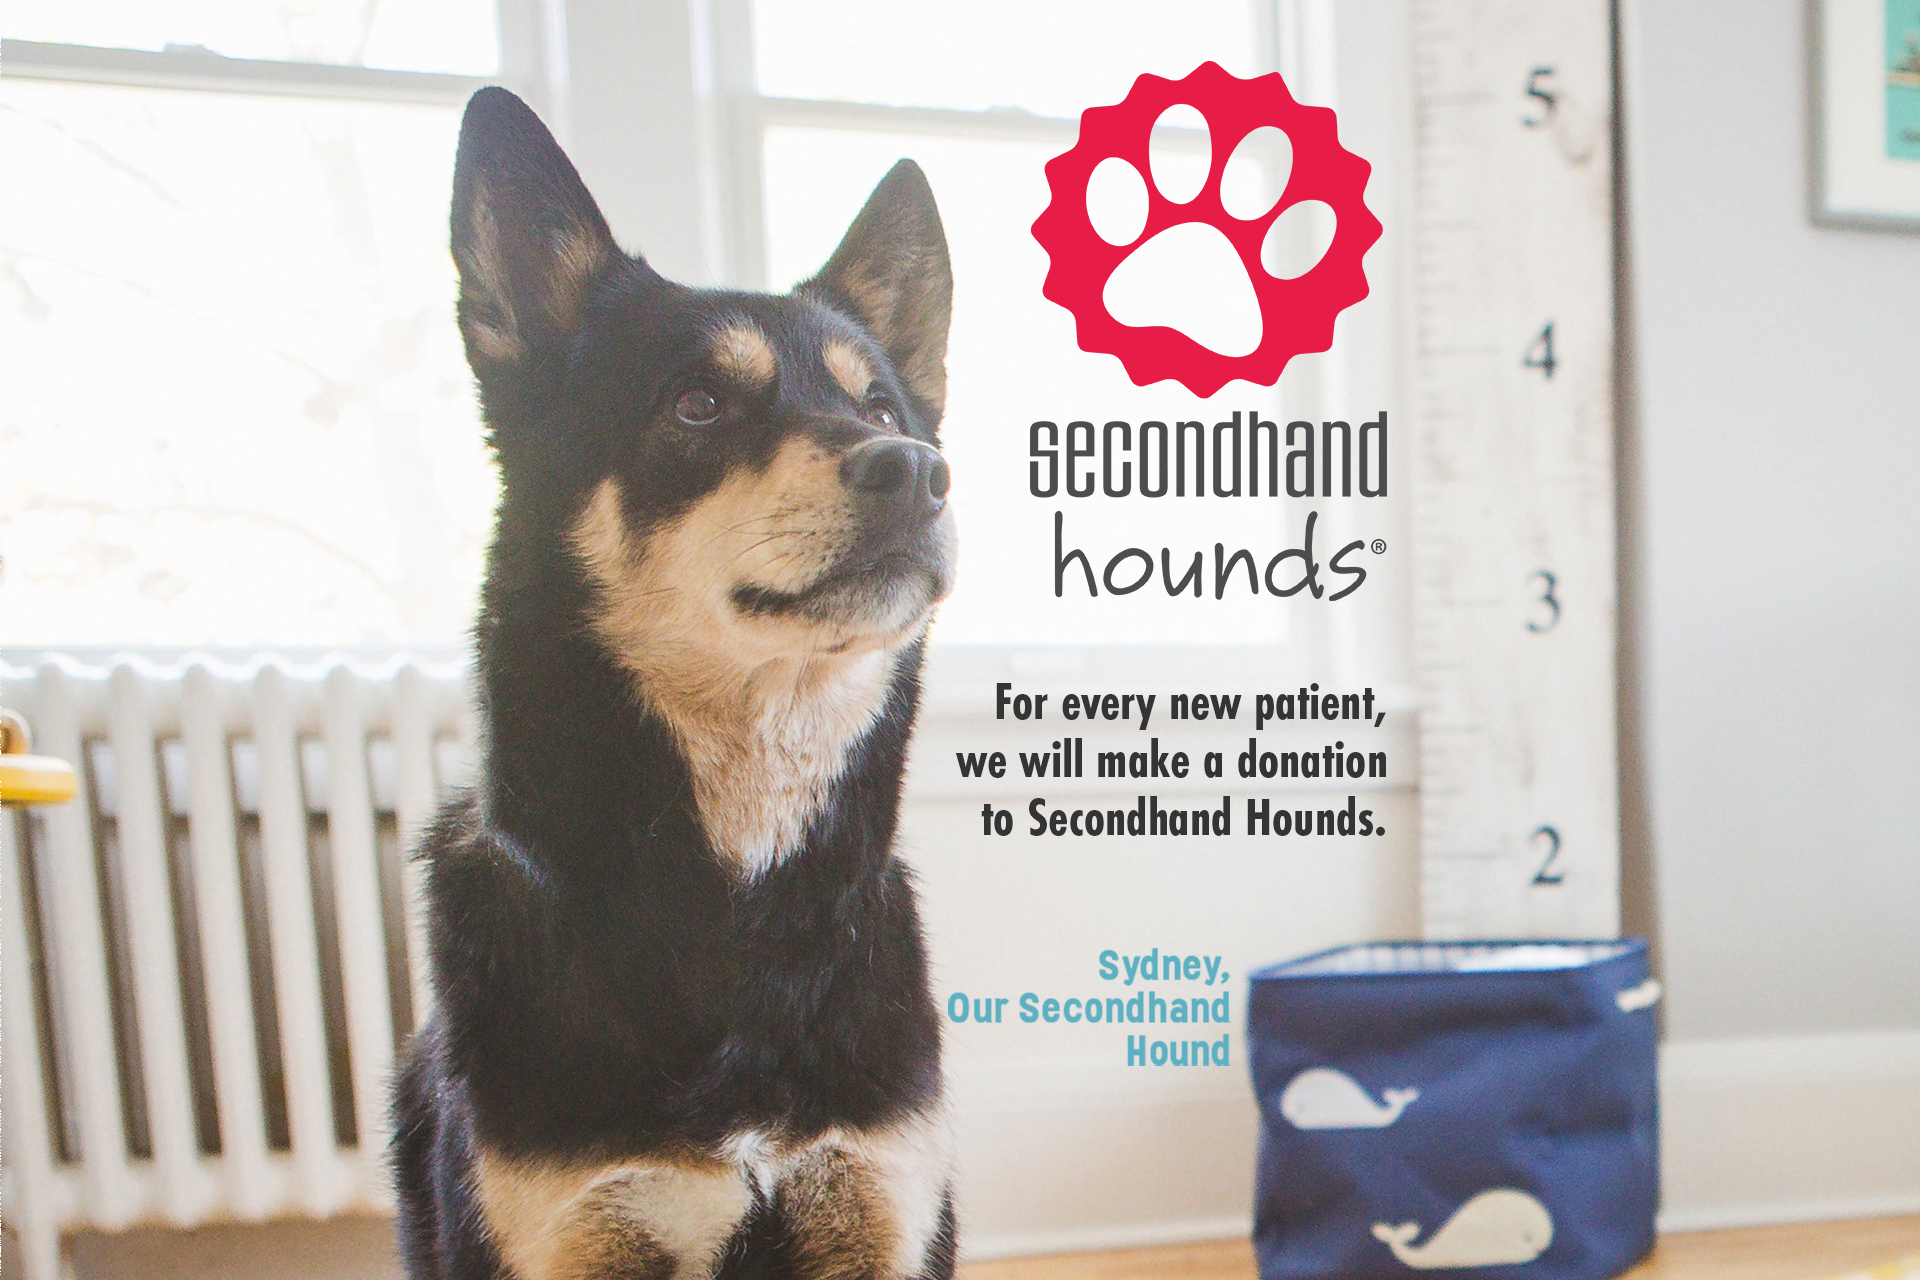 For every new patient, Loop Dental will make a donation to Secondhand Hounds.